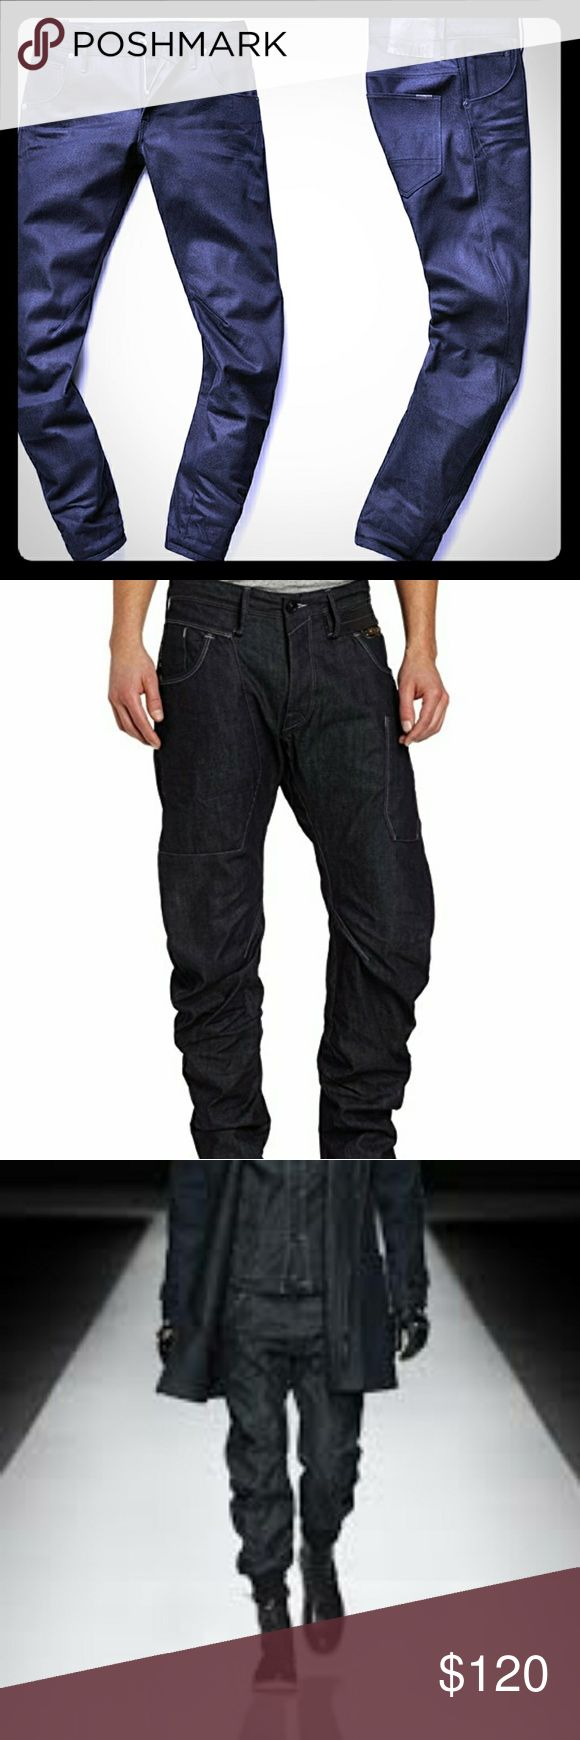 "G-Star RAW Men's""Modernist Army Radar Taper"" Jeans Constructed using G-Star RAW 3D design principles, the Army Radar jeans offers a bowed fit that turns around the legs. This means a tapered fit with enhanced comfort and movement. For a sporty silhouette, this seasonal version is complete with elasticated hems and adjustable waistline with button closures. Deep navy coloring with black stitching and details. These were THIS seasons HOTTEST NEW style of men's wear jeans and pants!! G-Star RAW…"